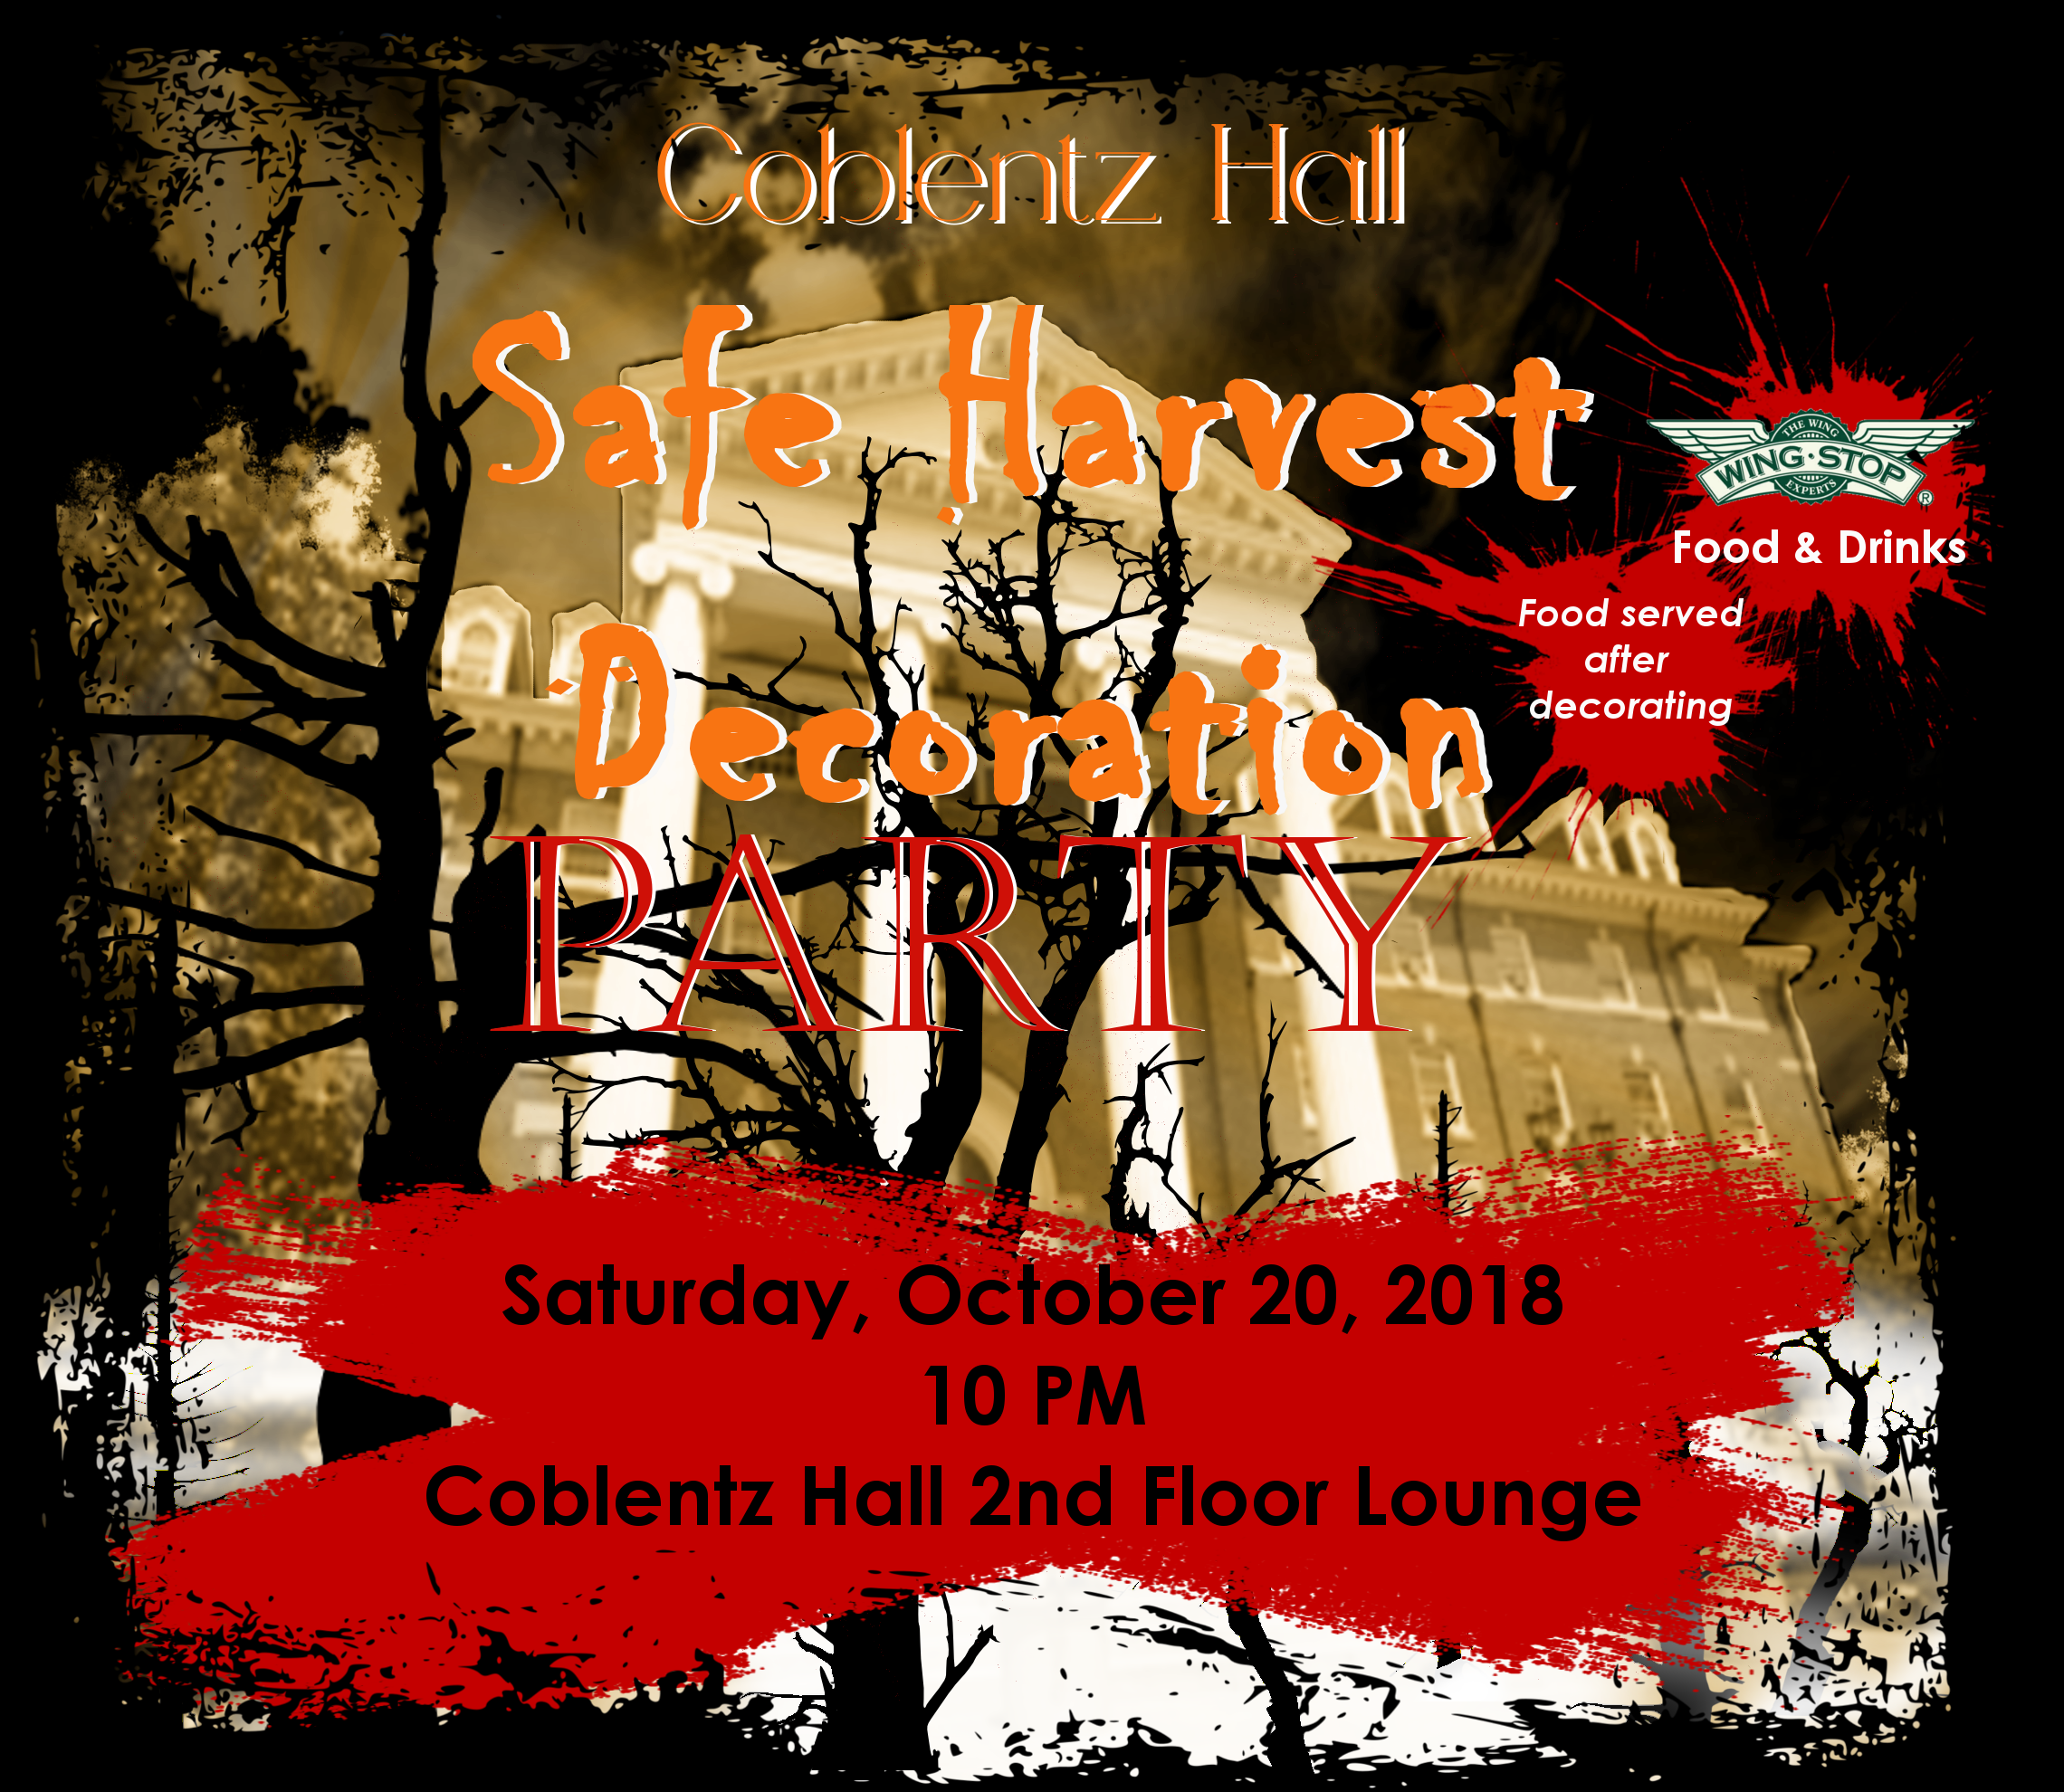 Coblentz Hall Safe Harvest Decoration Pa